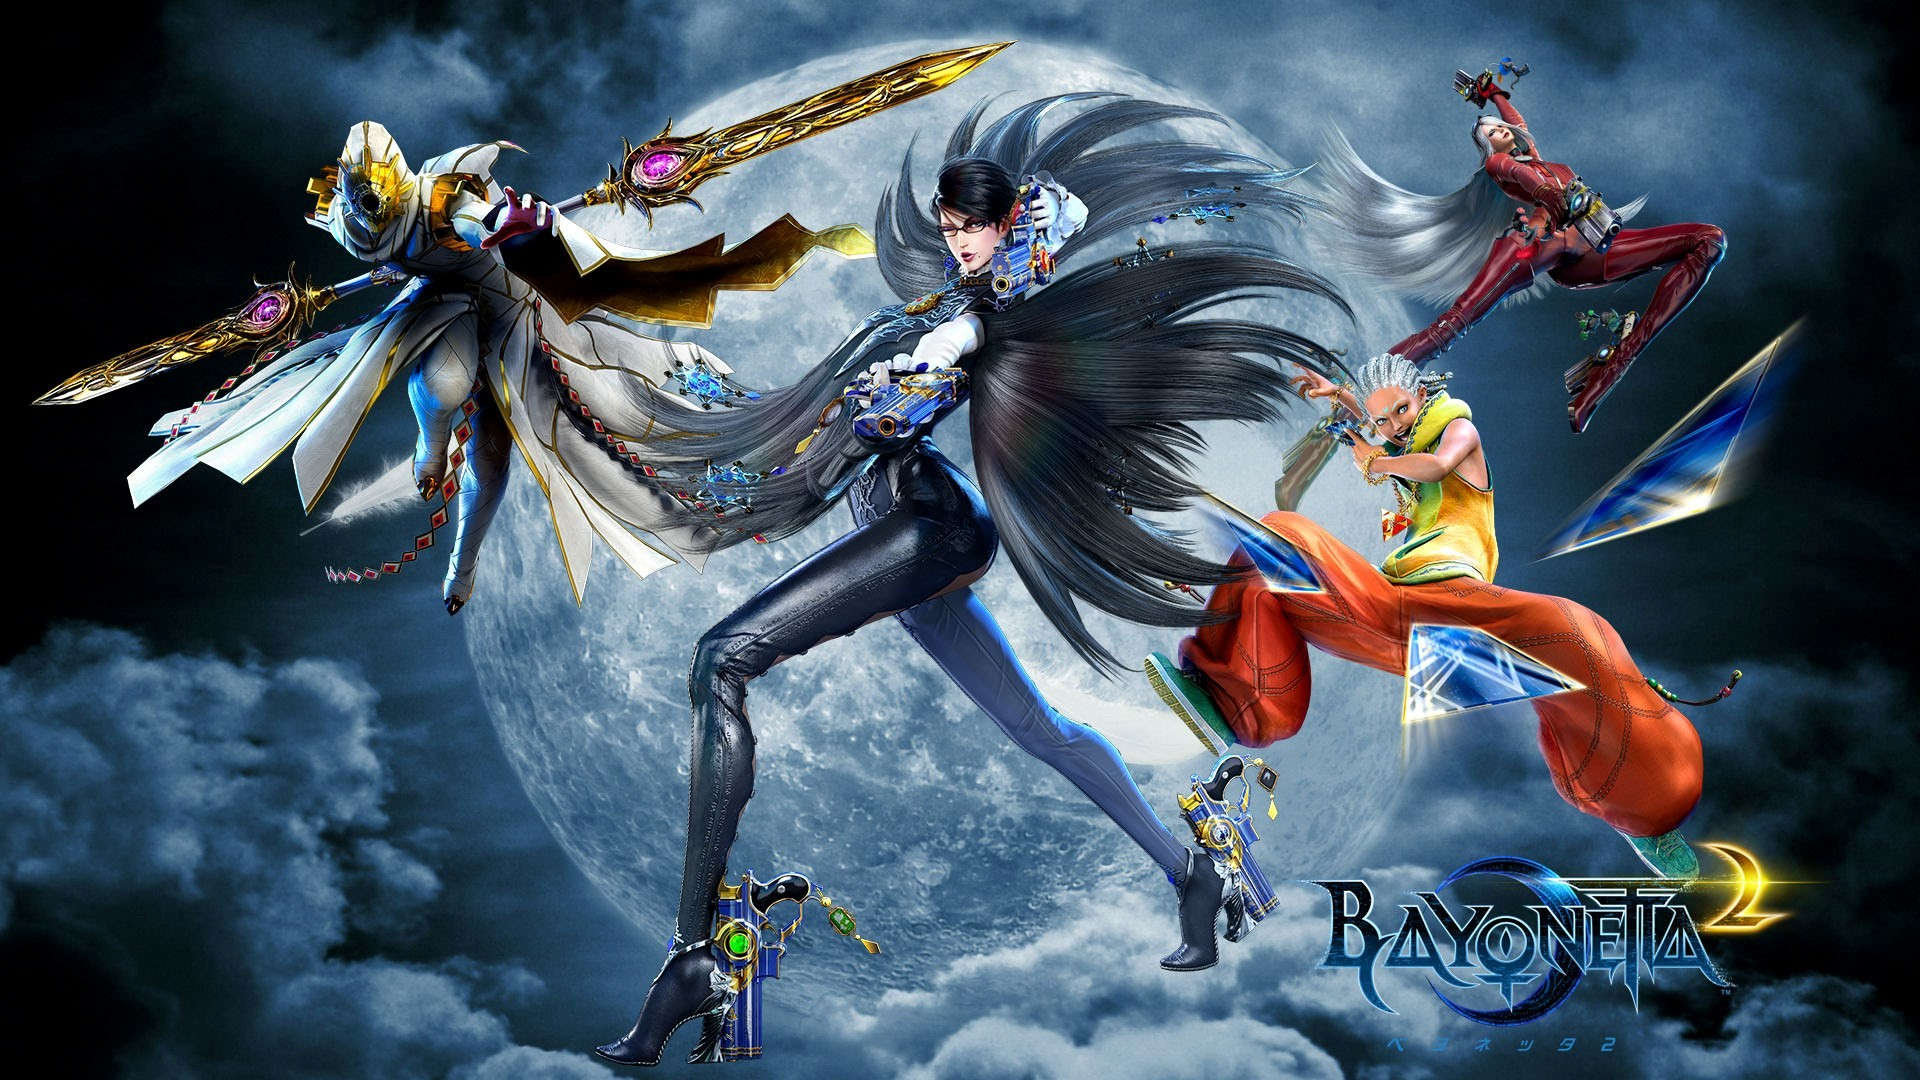 Bayonetta 2 wallpaper for desktop background by Clay Ross (2016-02-23)